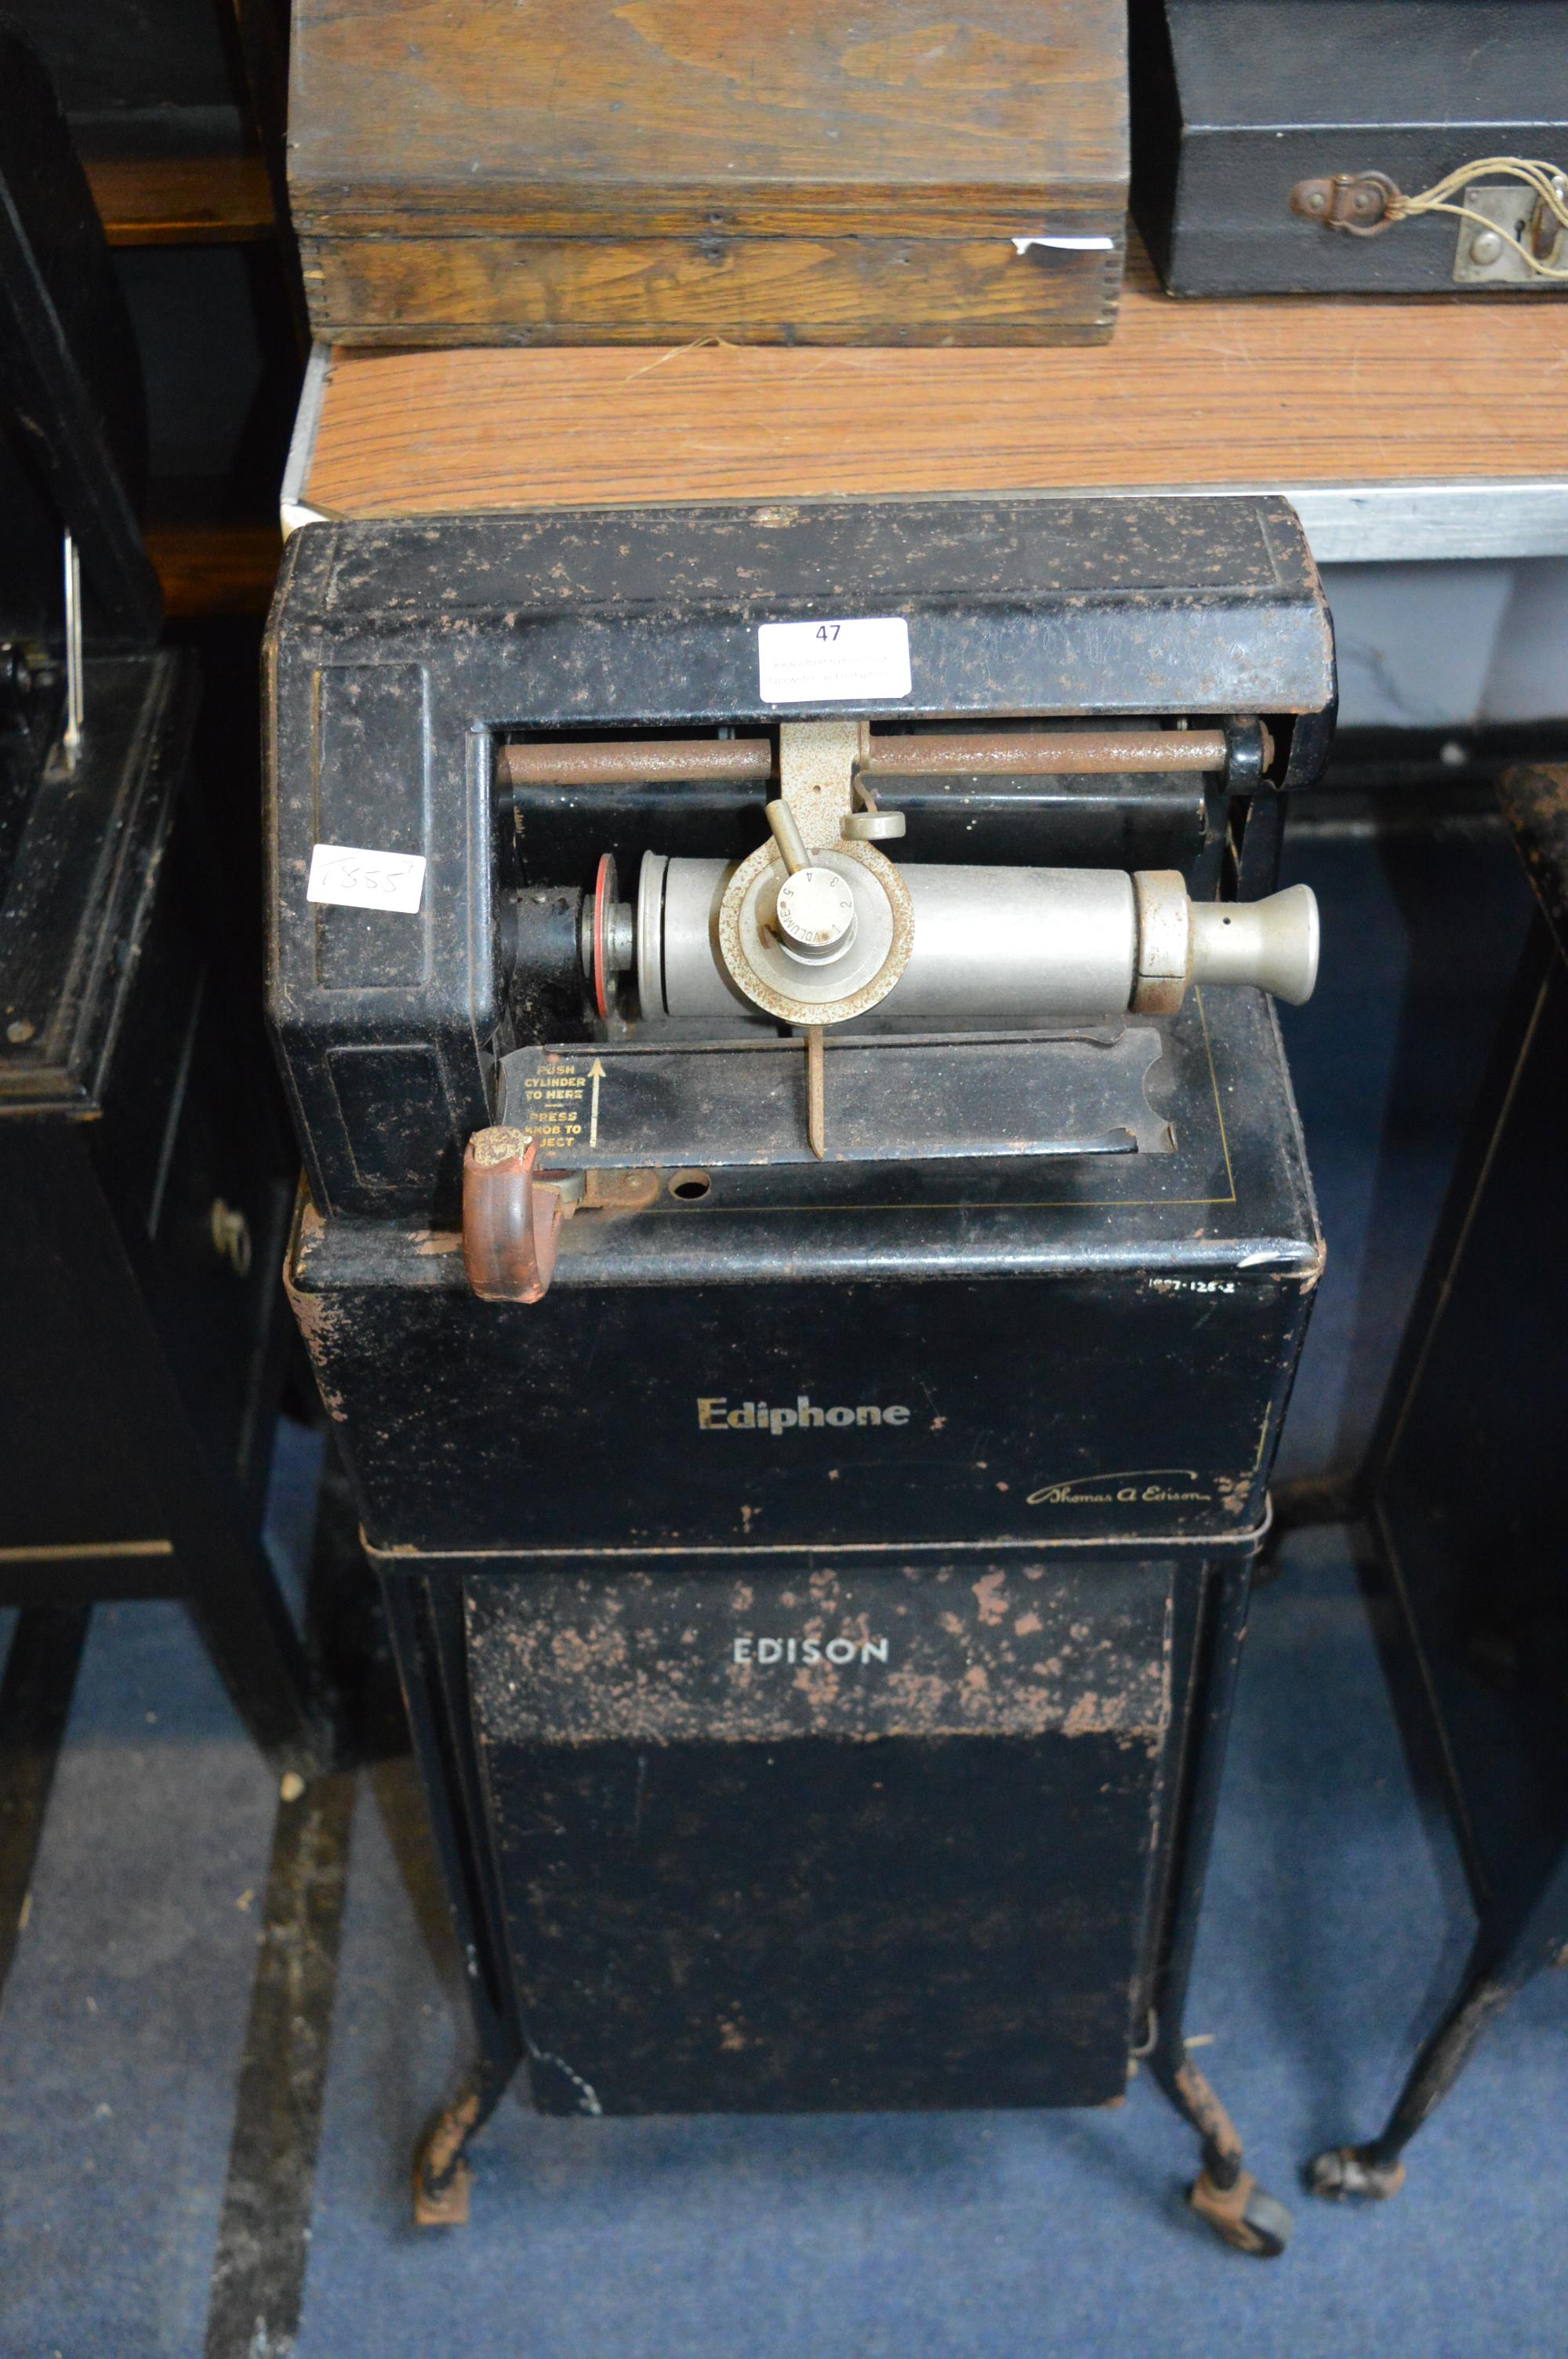 Ediphone Dictation and Stenographer Machine